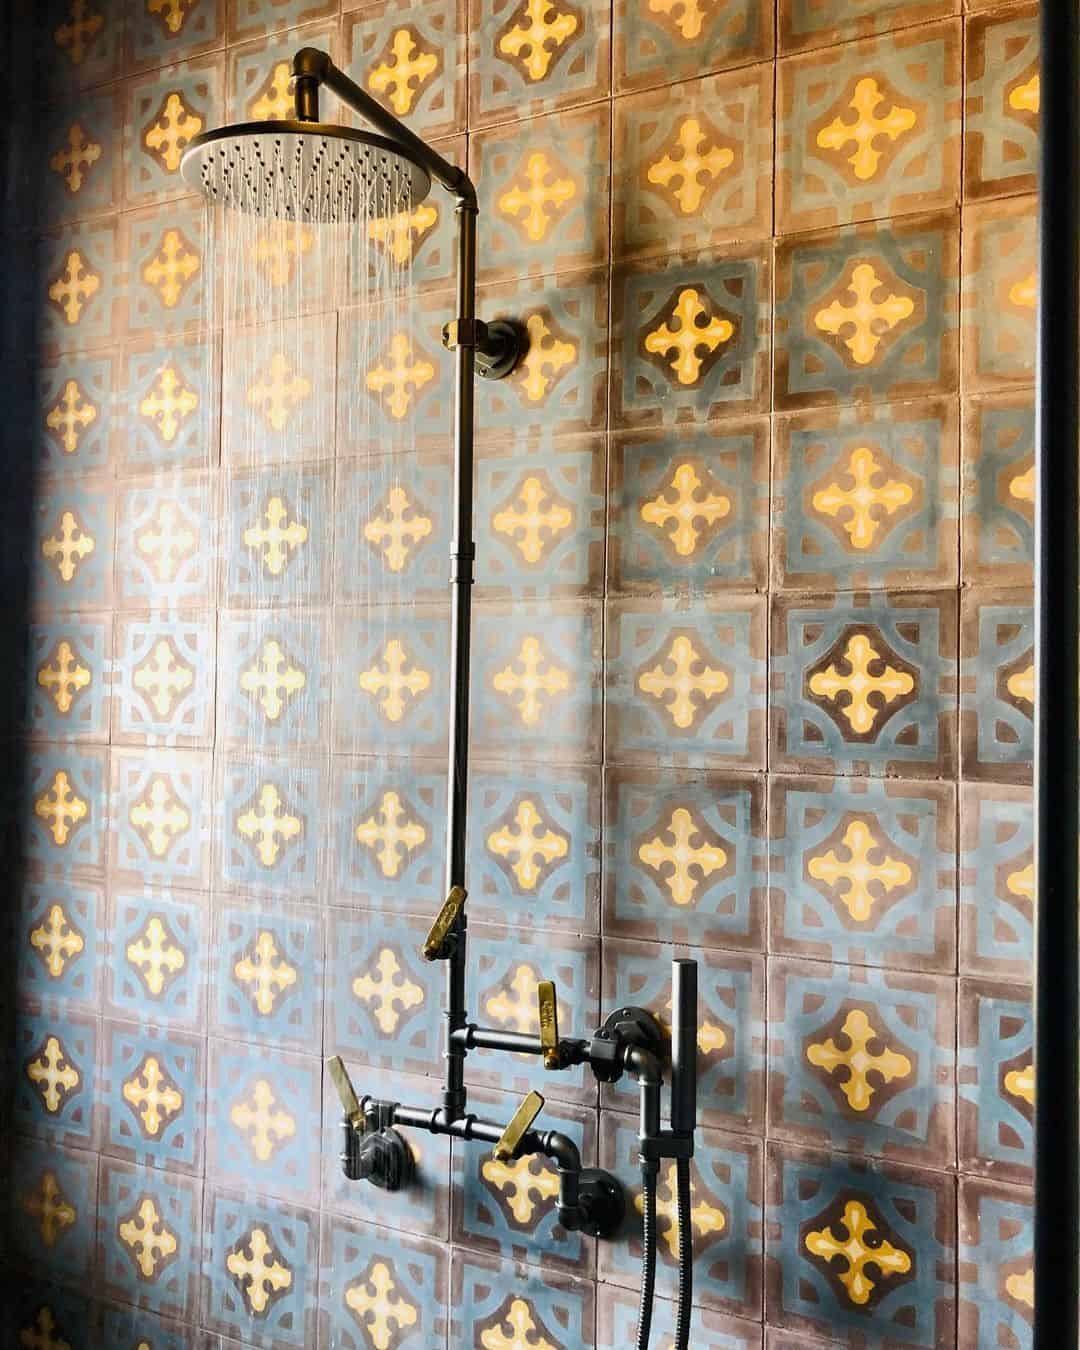 featured image showing - Elan Vital Collection against hand painted tile in golden light